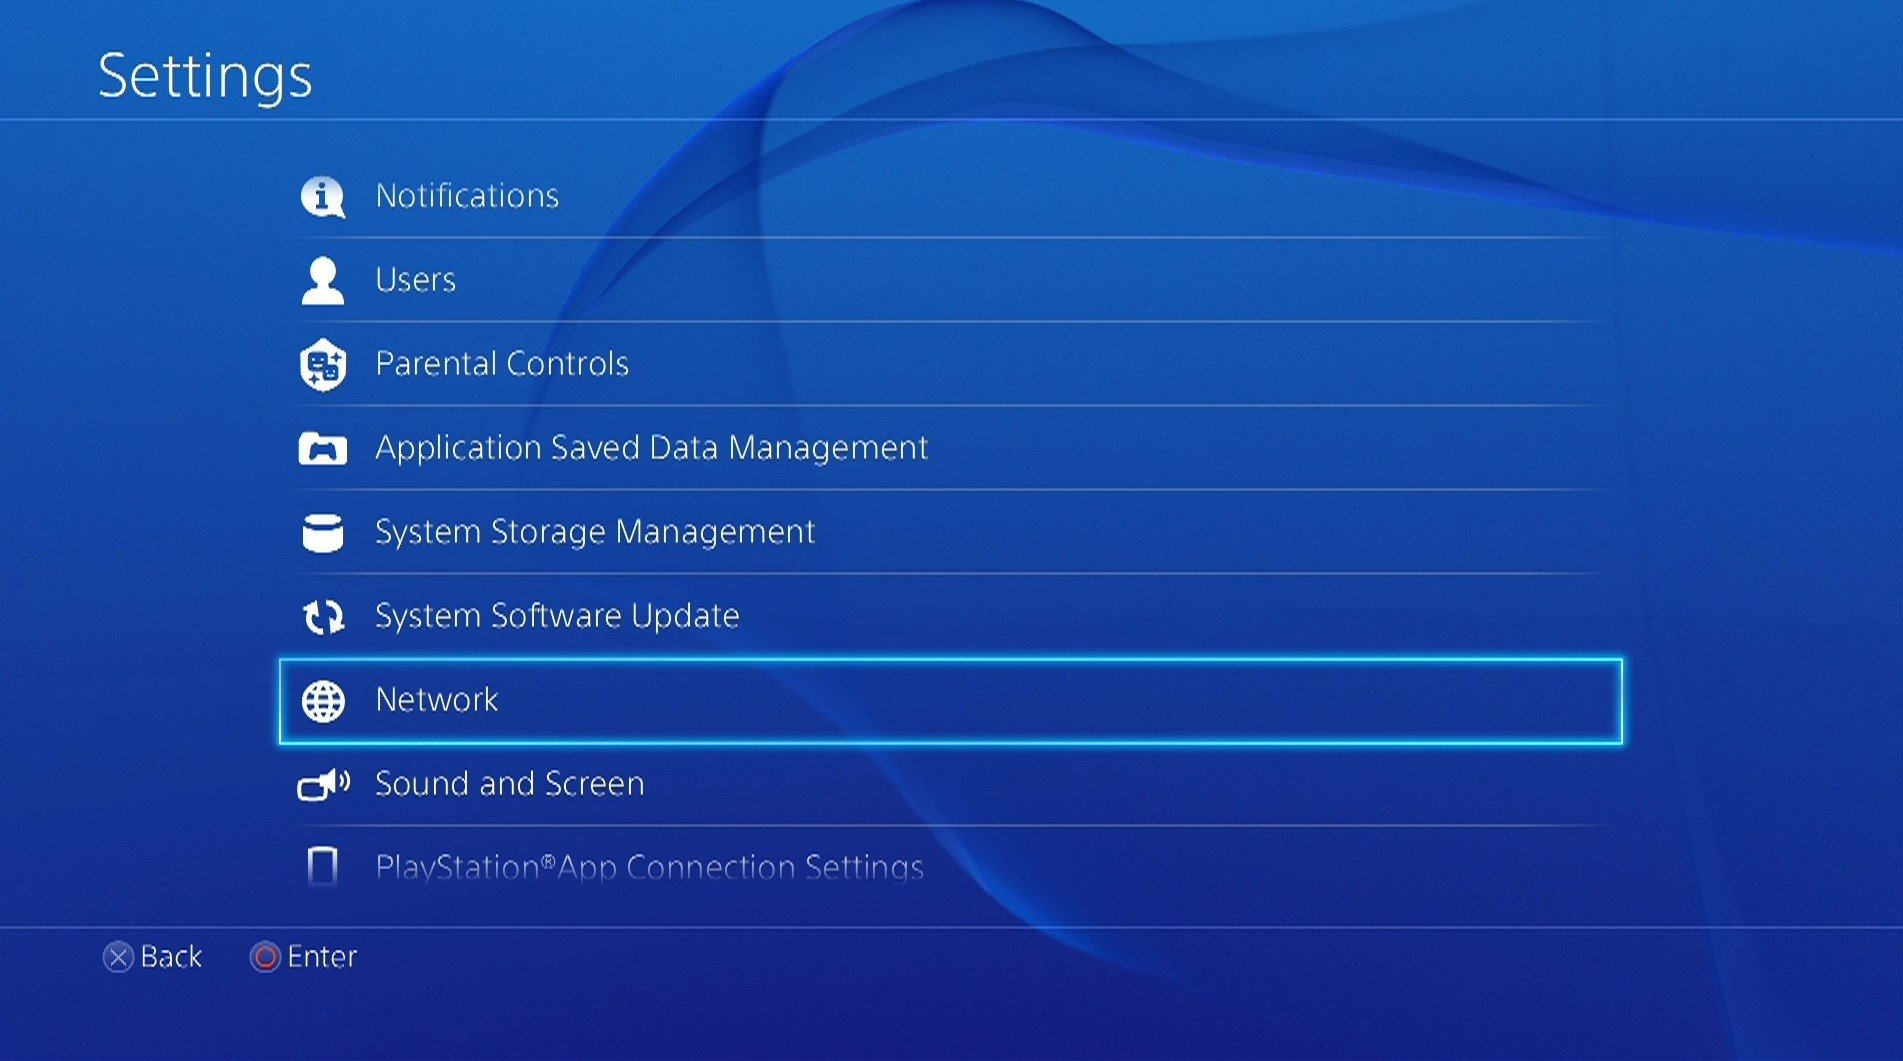 ps4 network settings menu